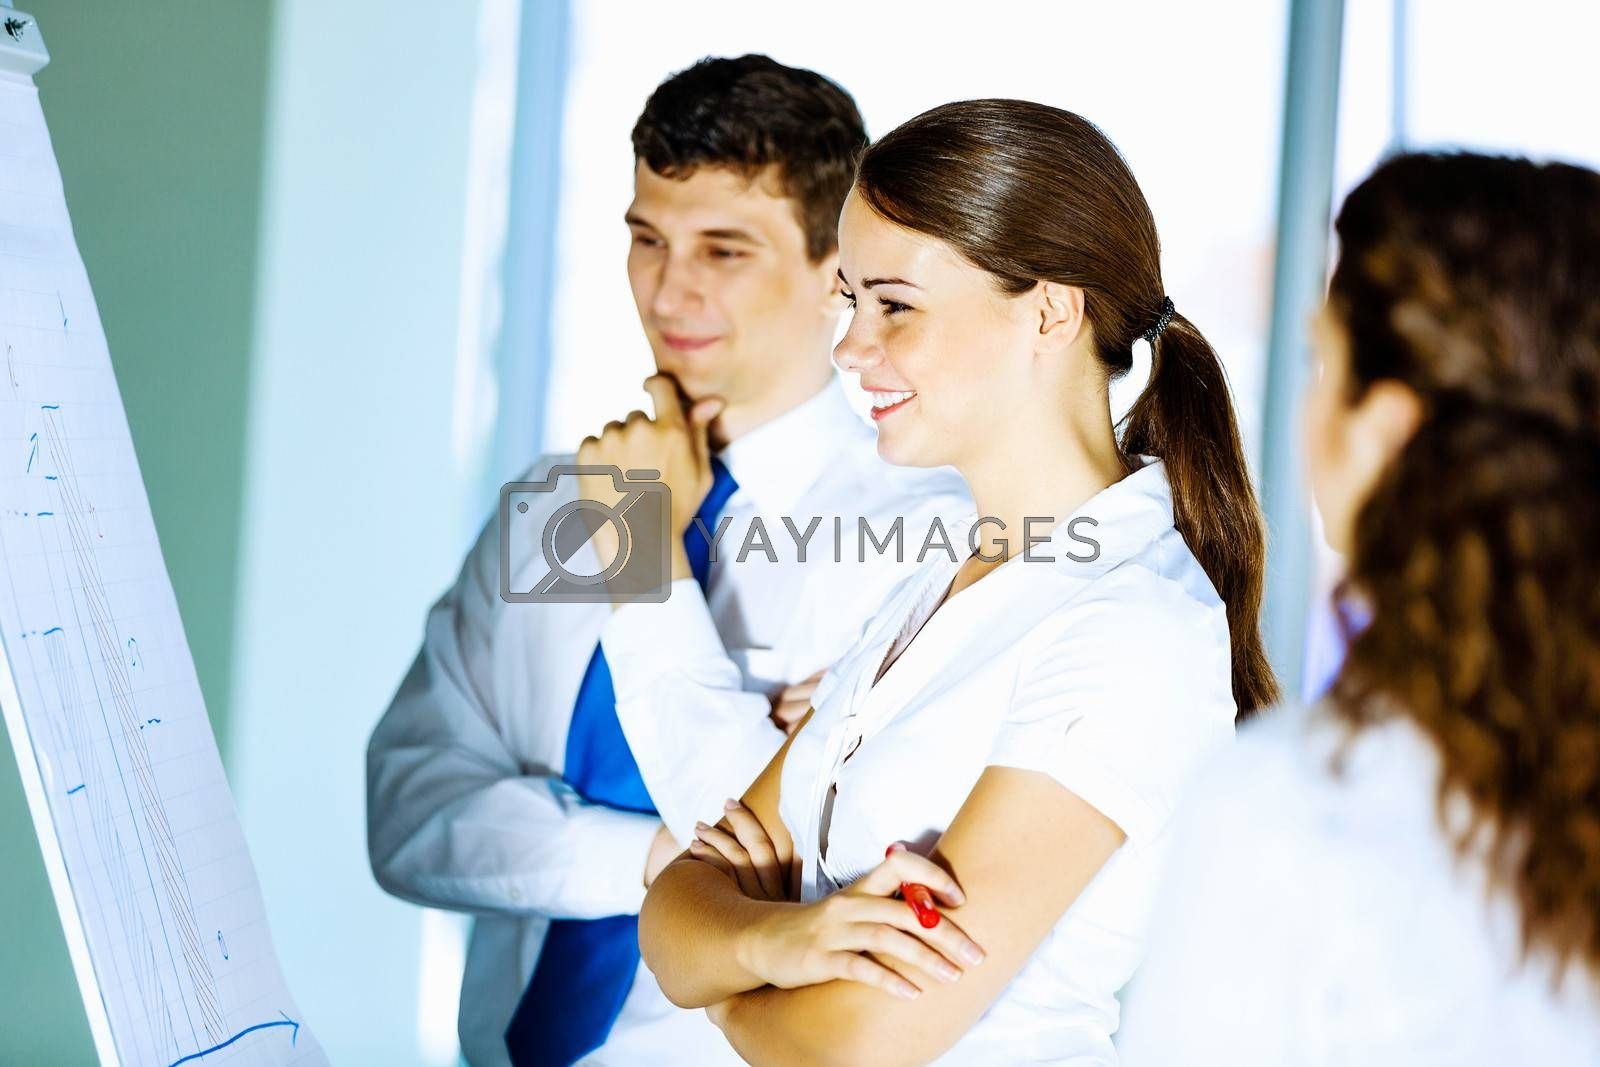 Image of business people at meeting discussing project